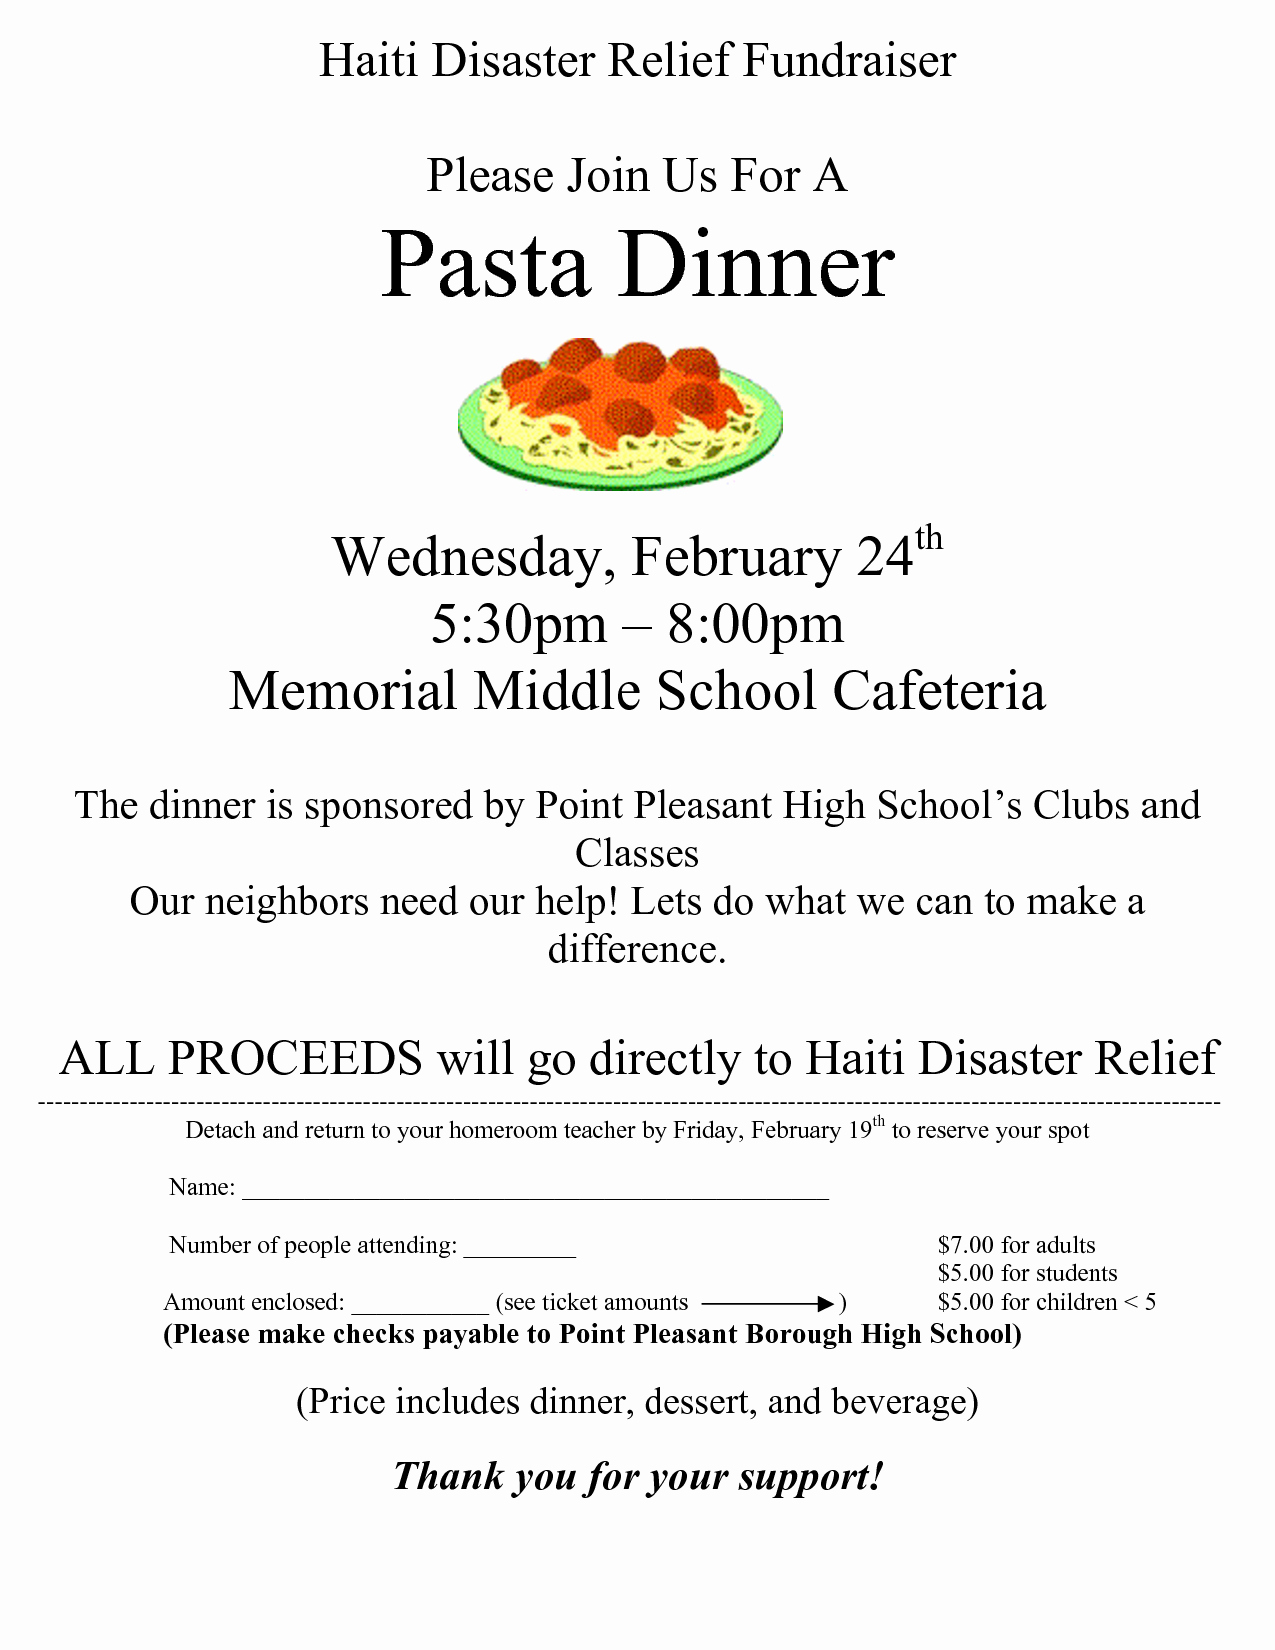 Spaghetti Dinner Fundraiser Flyer Template Fresh 29 Of Spaghetti Dinner Fundraiser Ticket Template